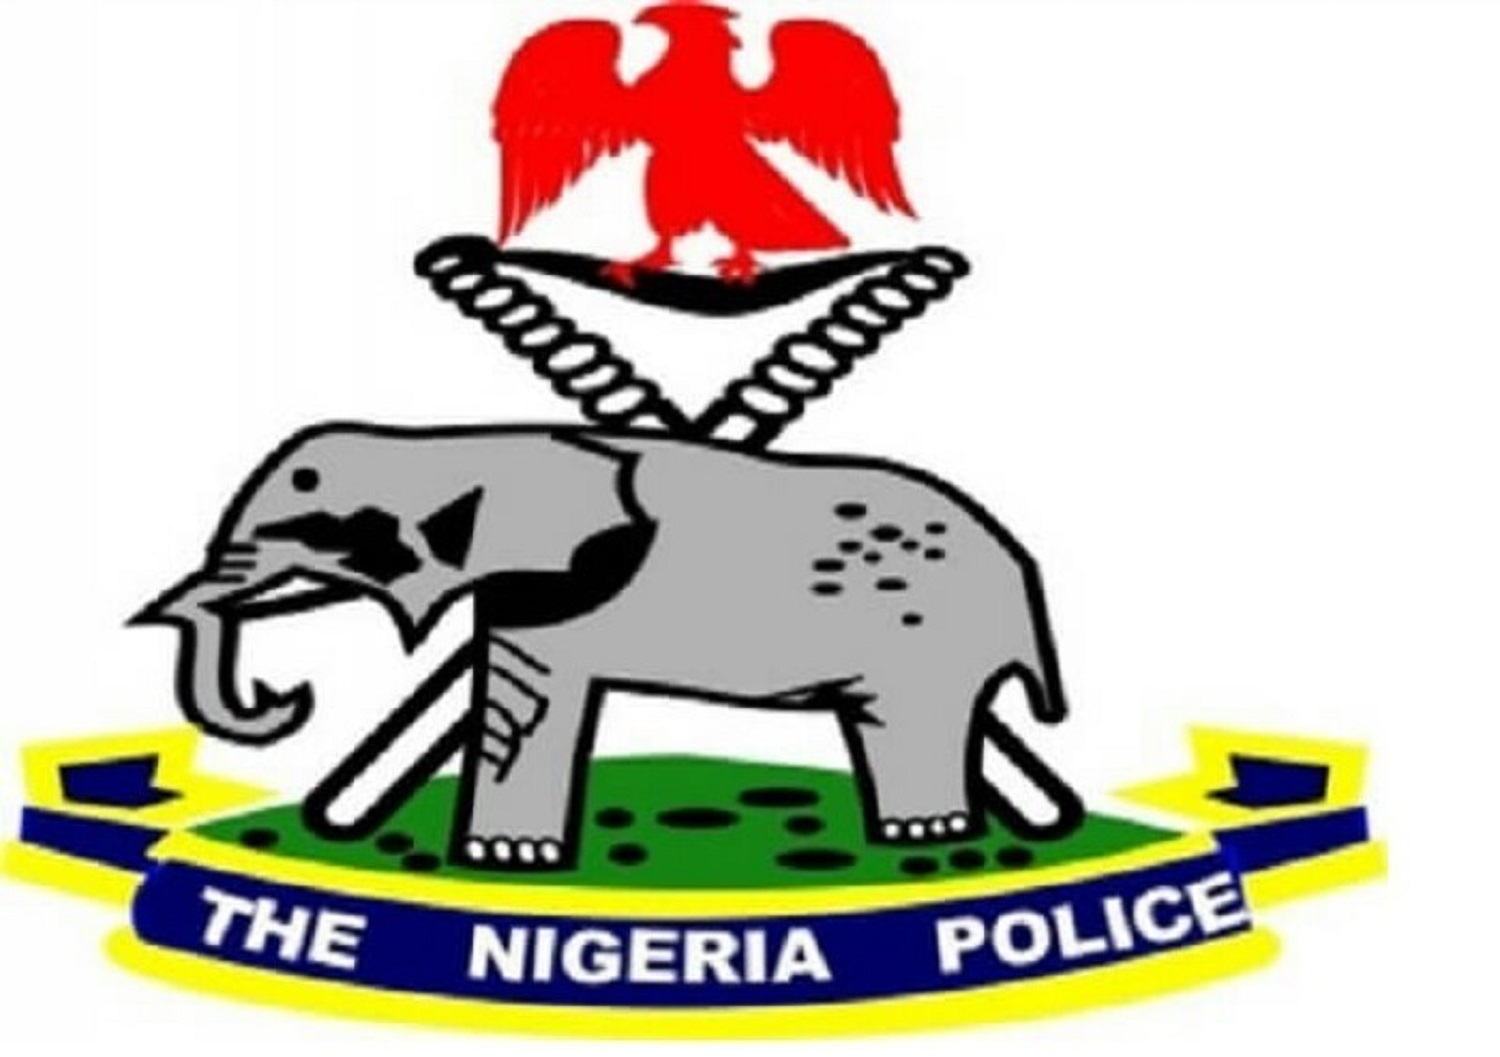 Police arrest five suspected child traffickers in Akwa Ibom - Vanguard